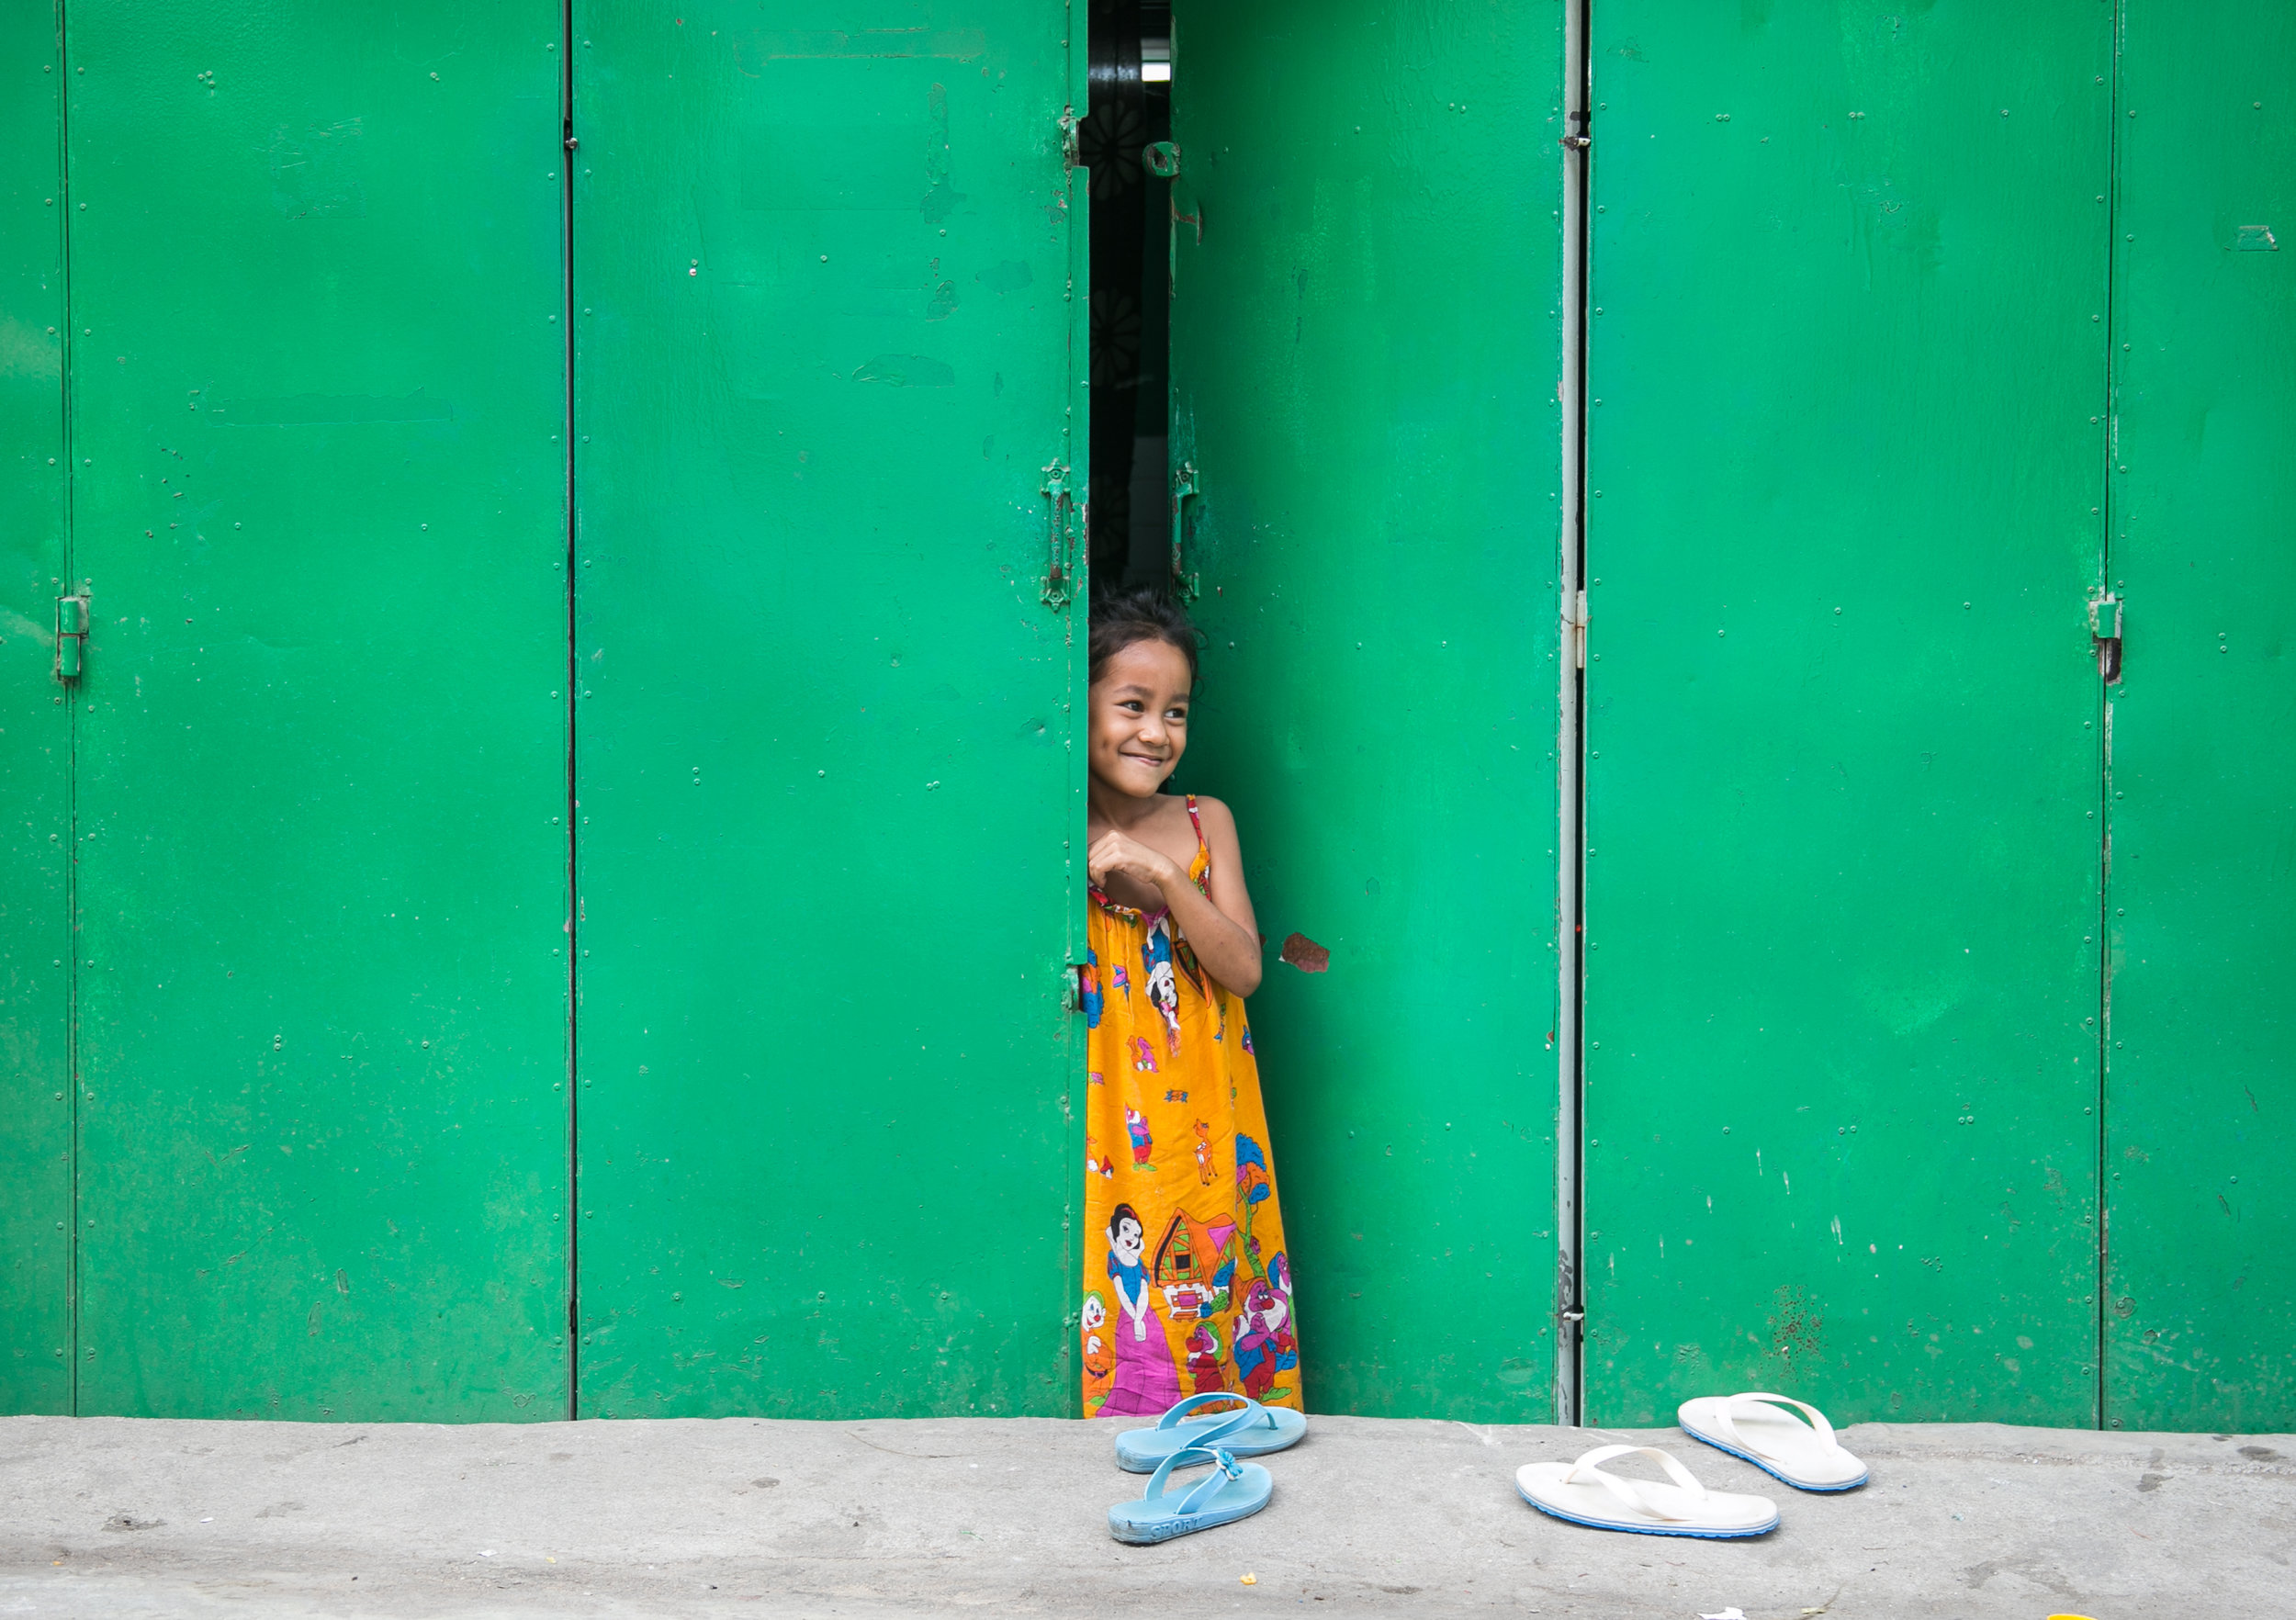 A girl smiles at her friends playing in the street in Phnom Penh's notorious street art district.